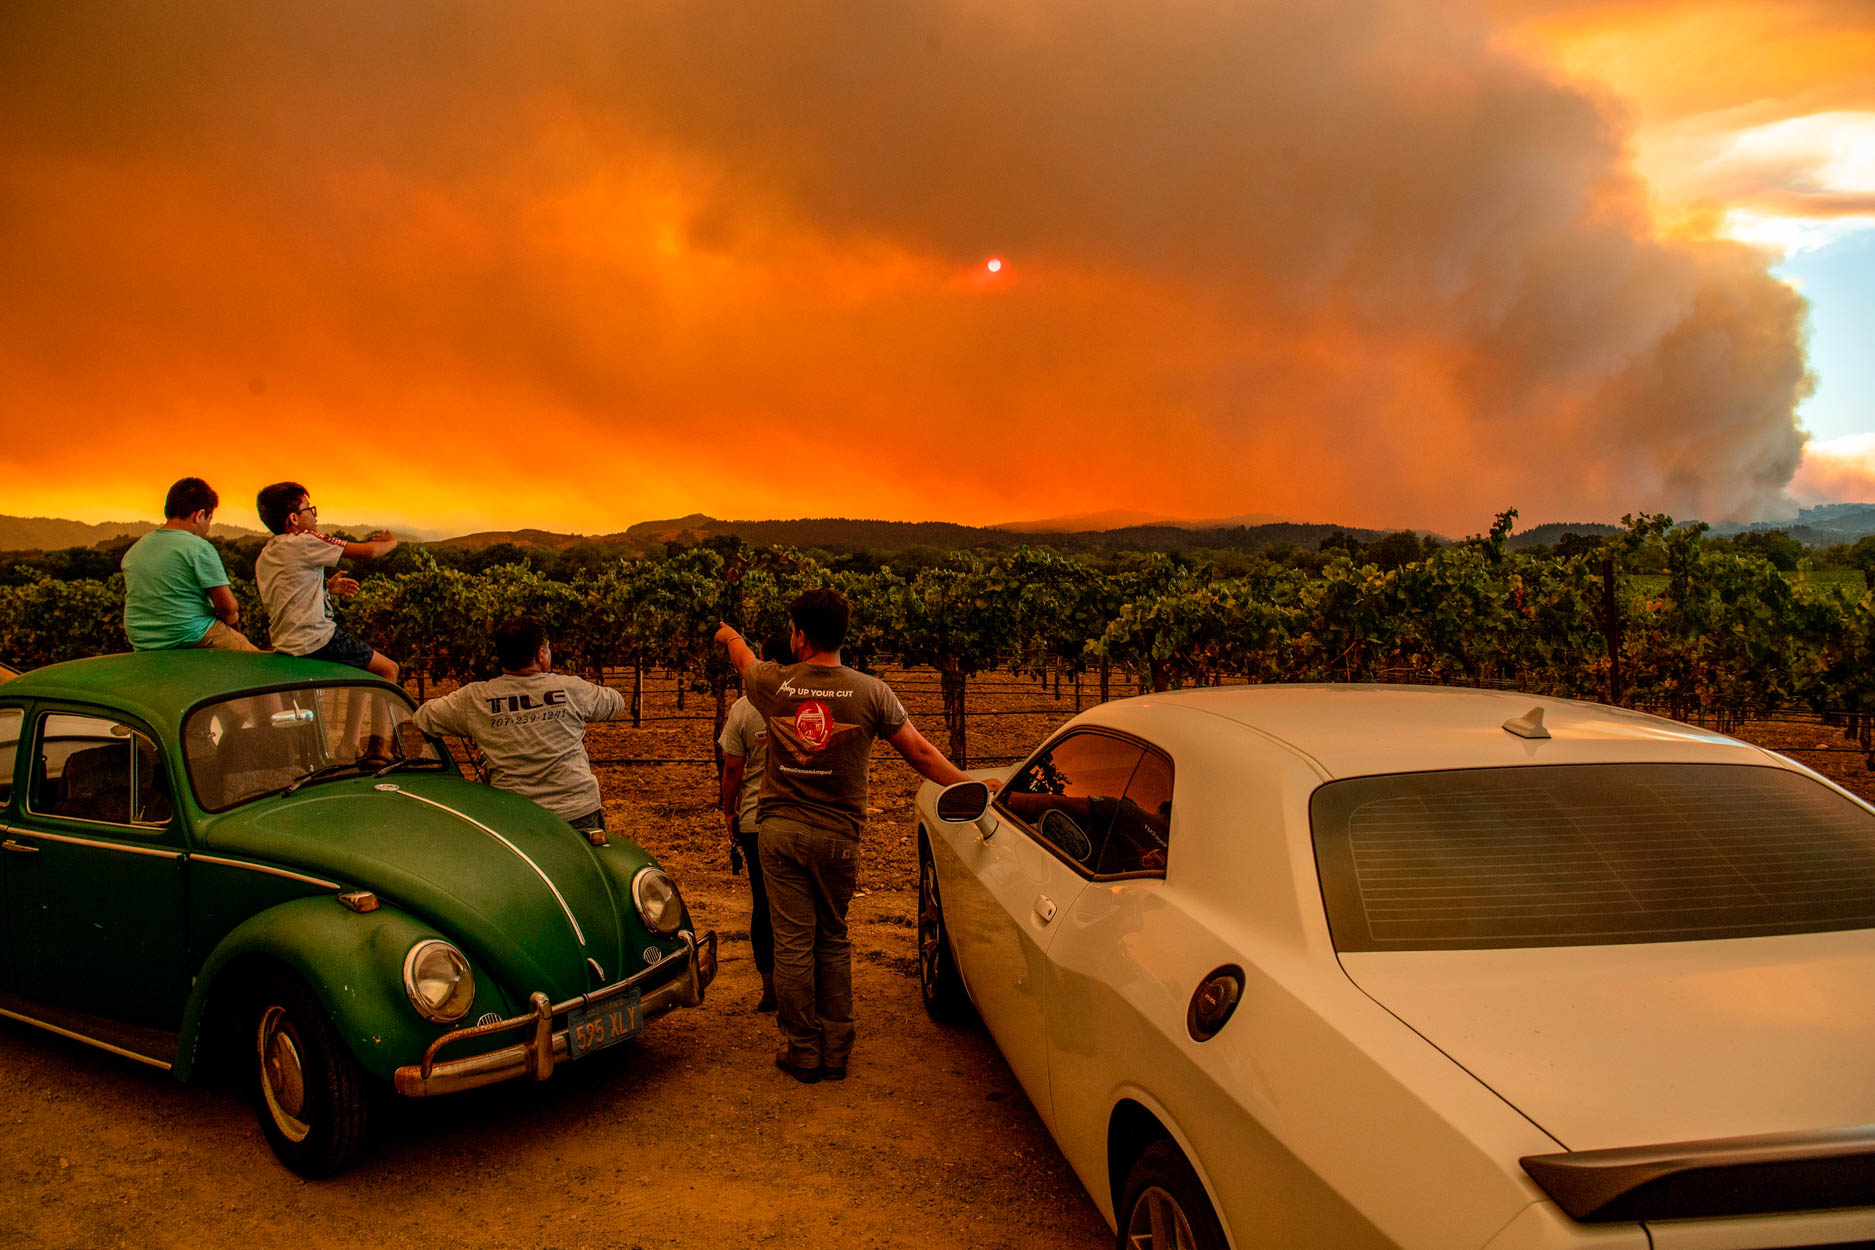 People watch the Walbridge fire, part of the larger LNU Lightning Complex fire, from a vineyard in Healdsburg, California on August 20, 2020.